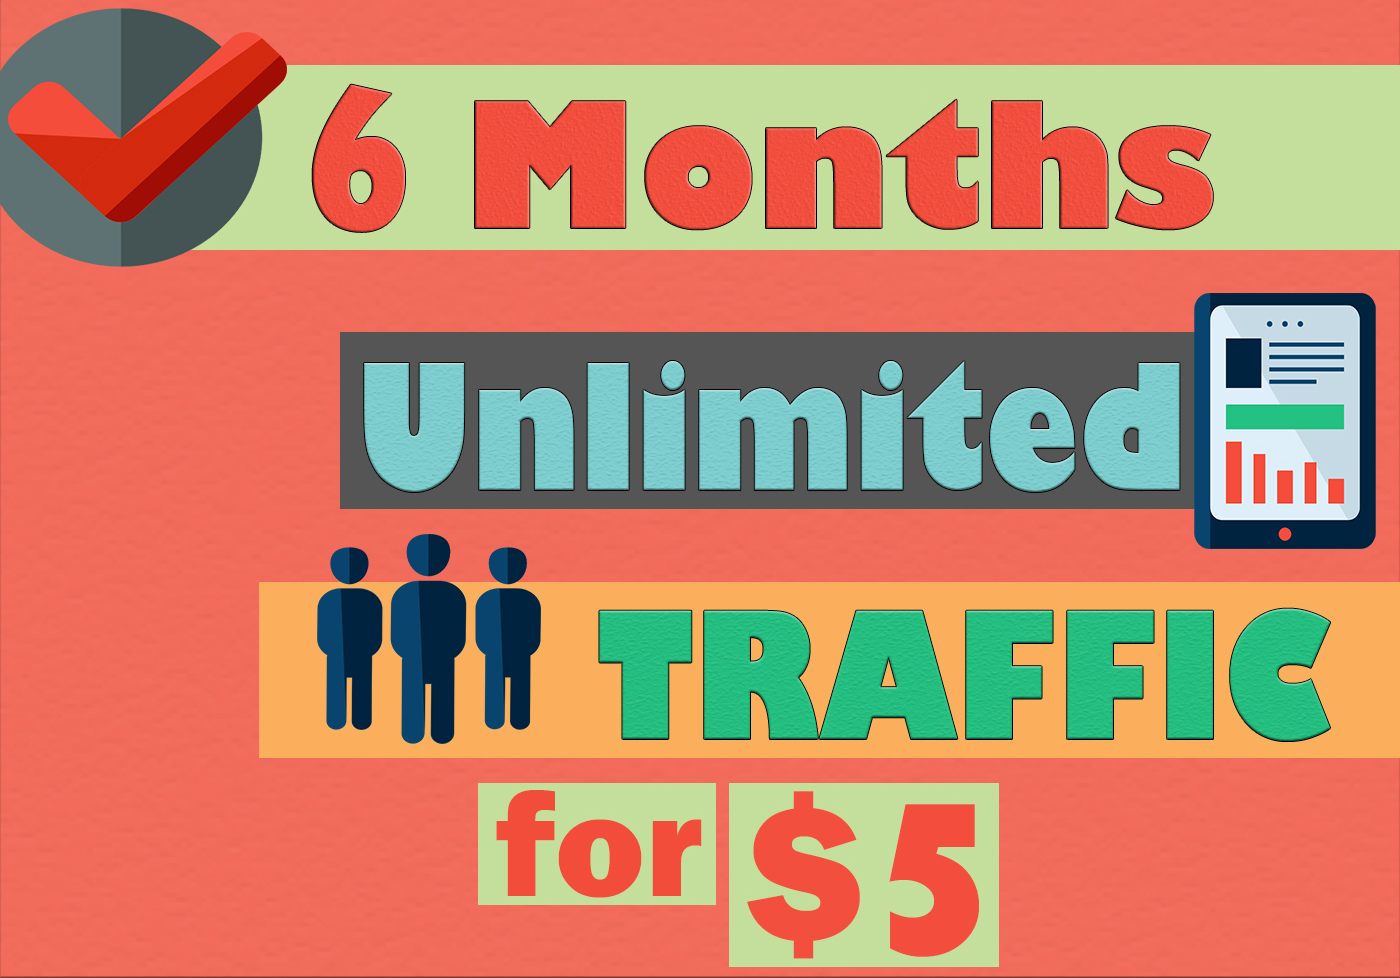 6 MONTHS UNLIMITED KEYWORD TARGETED TRAFFIC